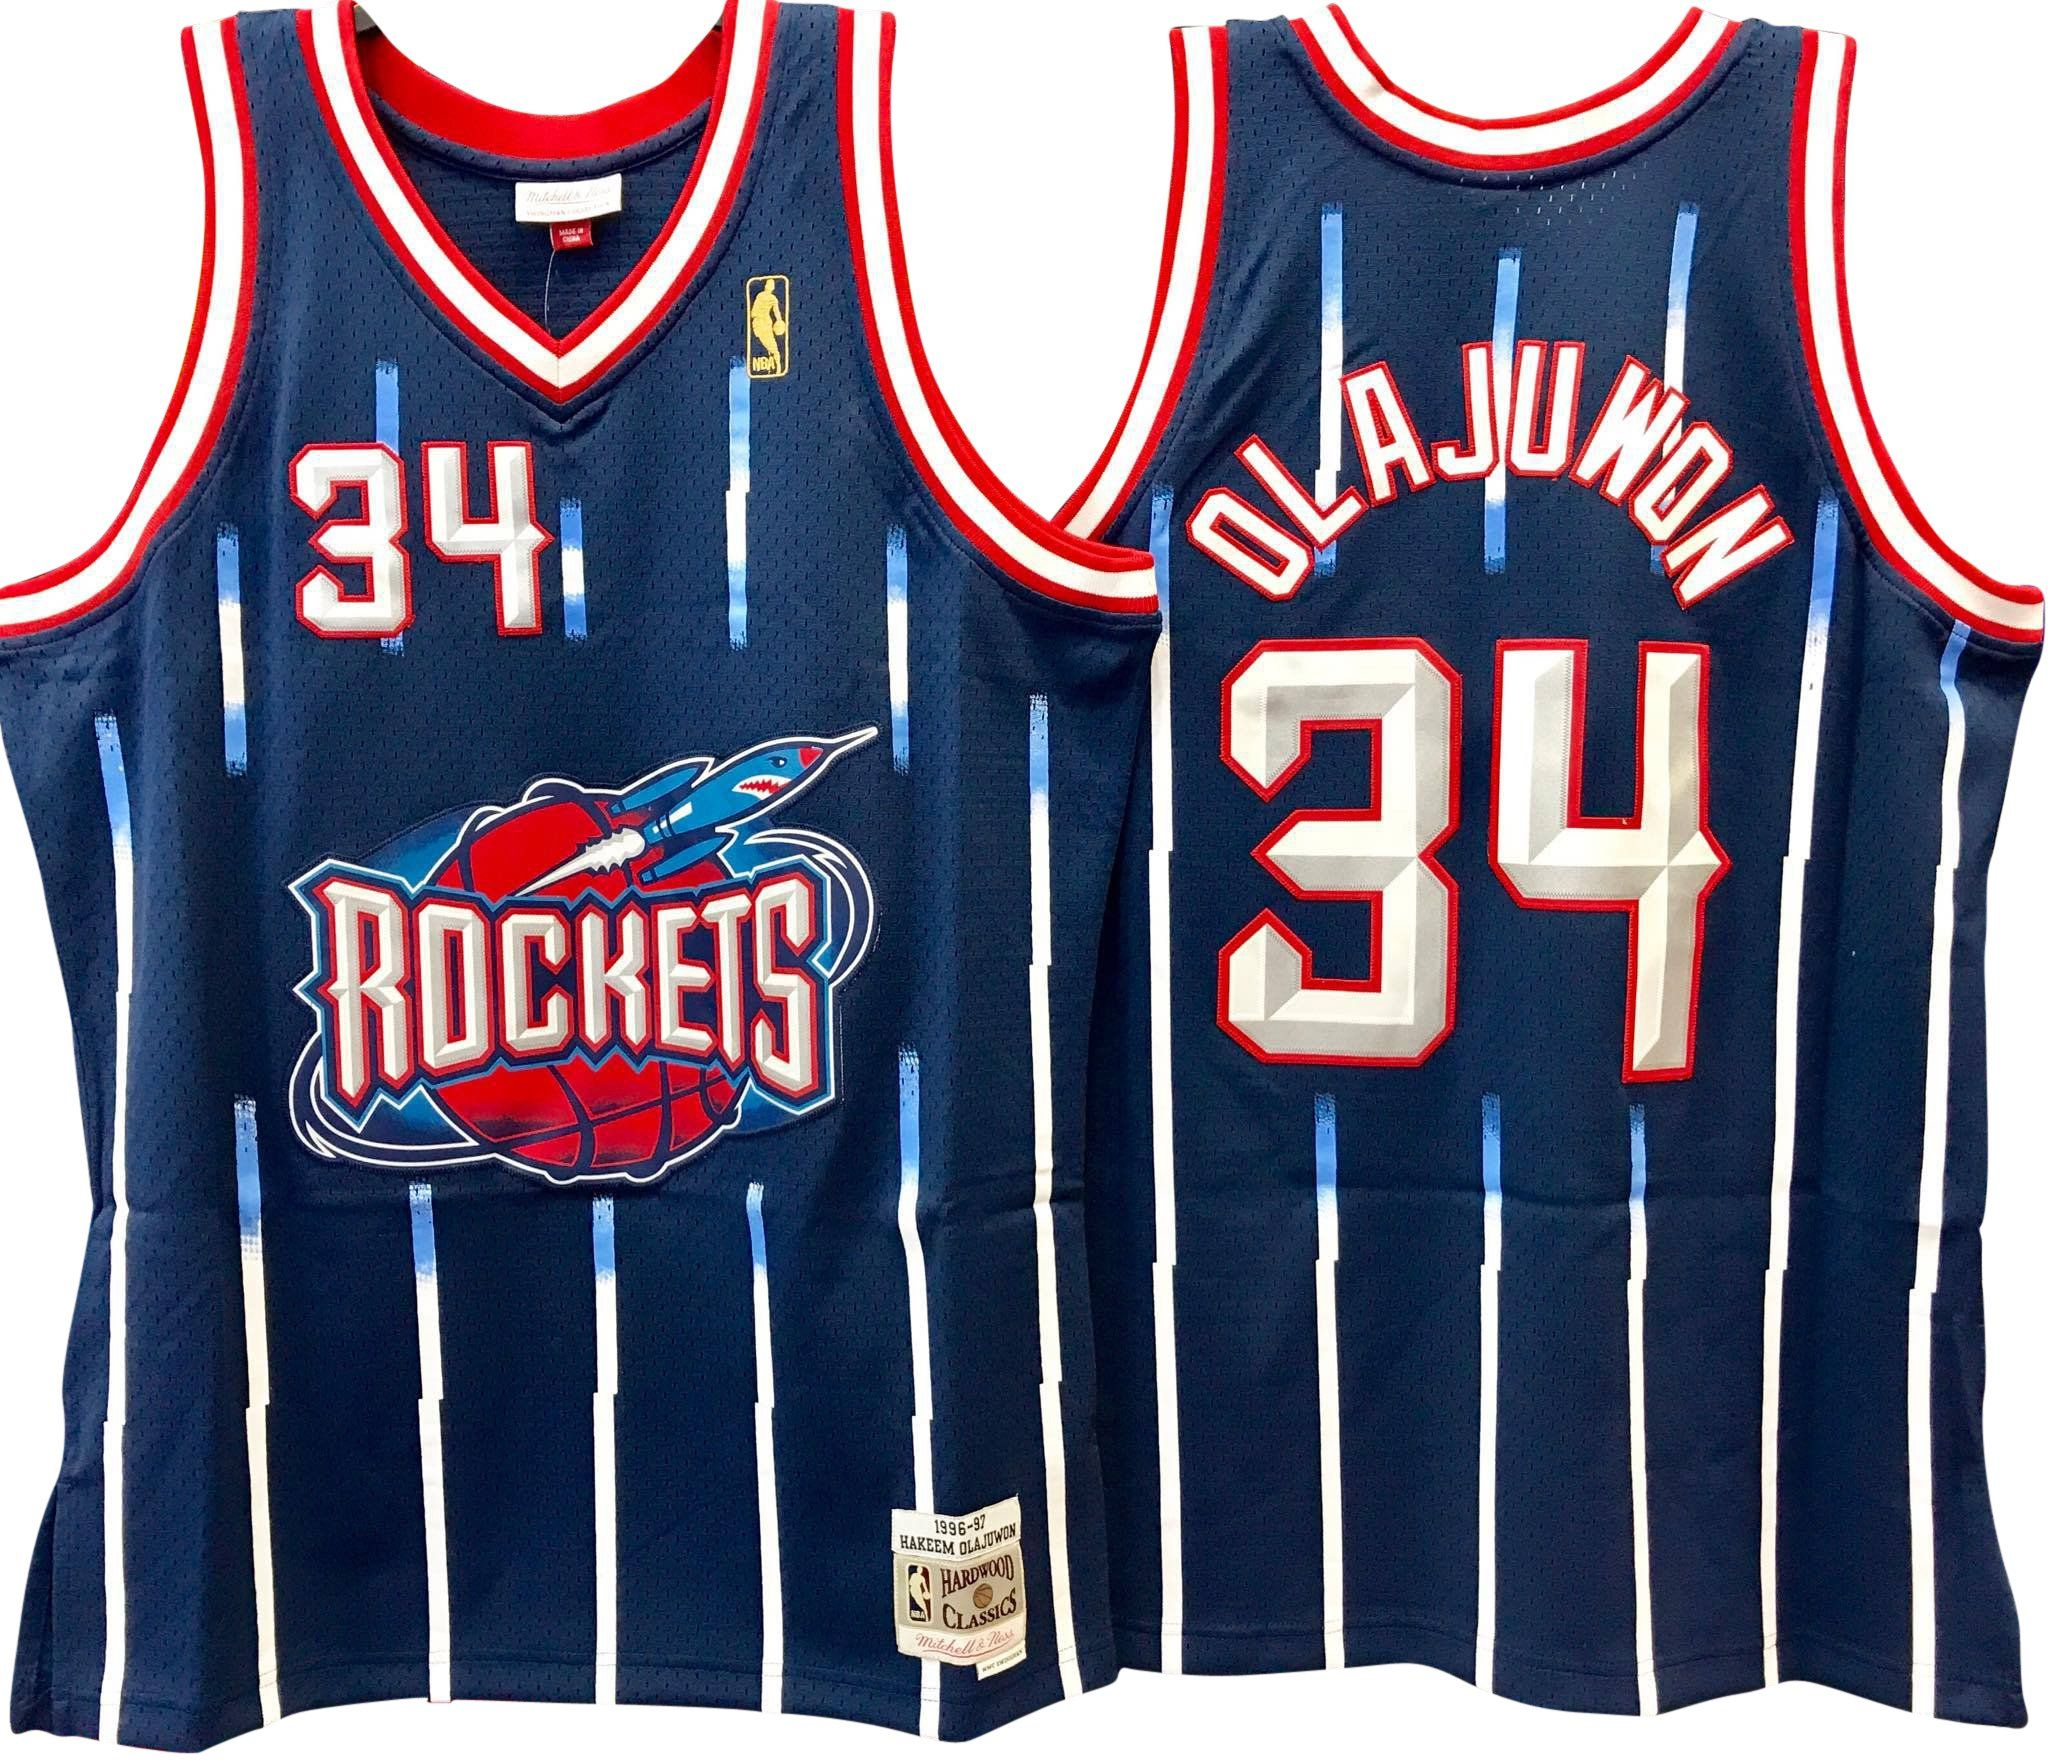 621e77e6f HAKEEM OLAJUWON HOUSTON ROCKETS NBA HARDWOOD CLASSICS THROWBACK NAVY SWINGMAN  JERSEY